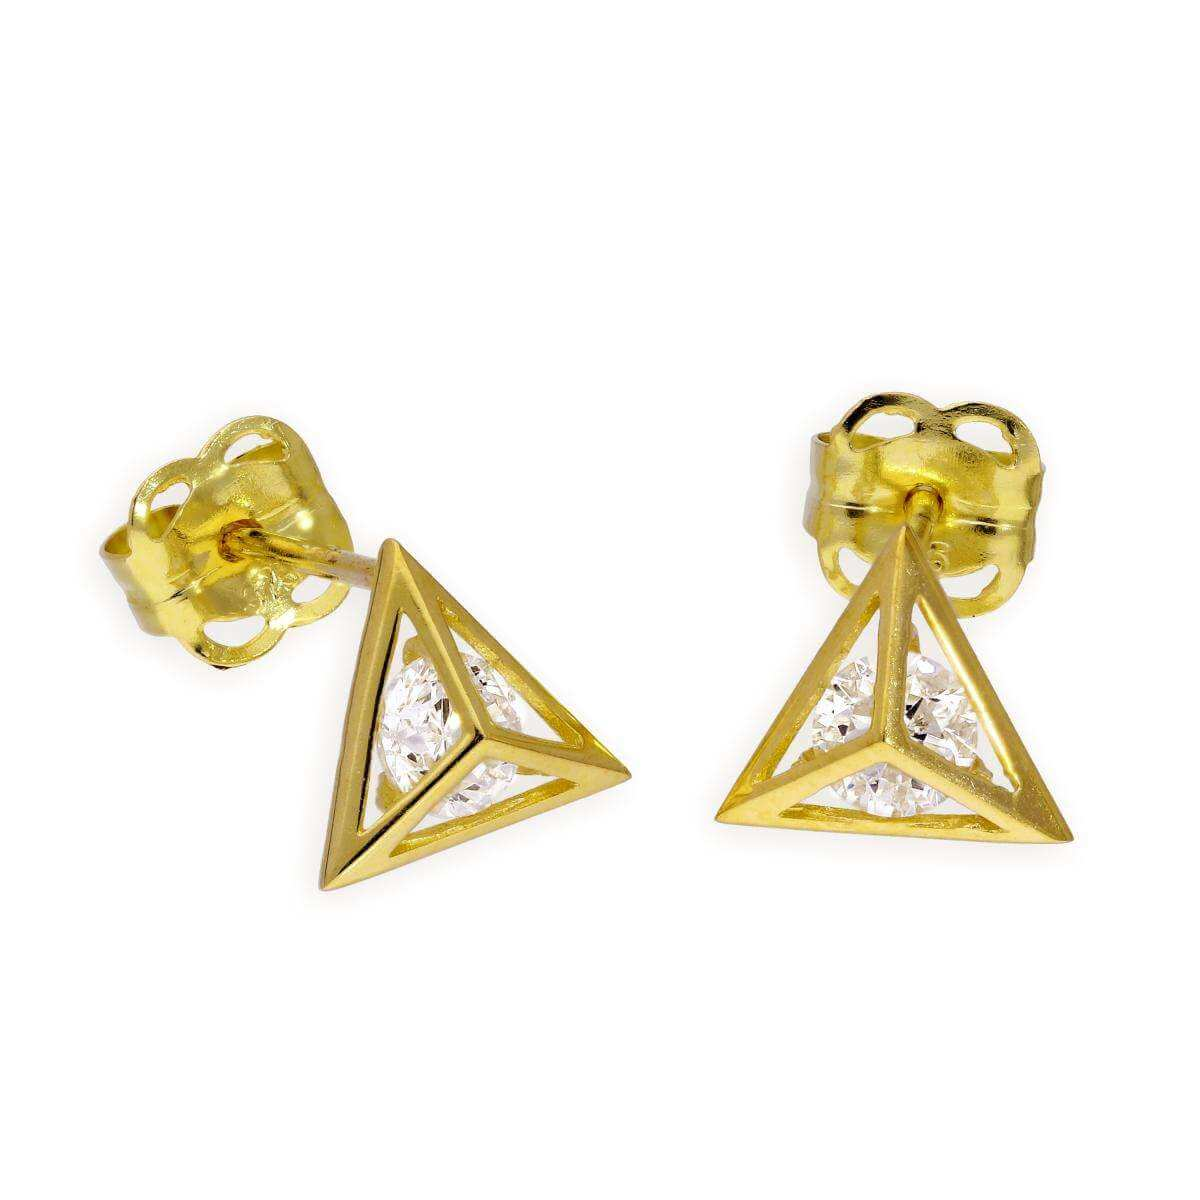 9ct Gold & Clear CZ Crystal Pyramid Stud Earrings